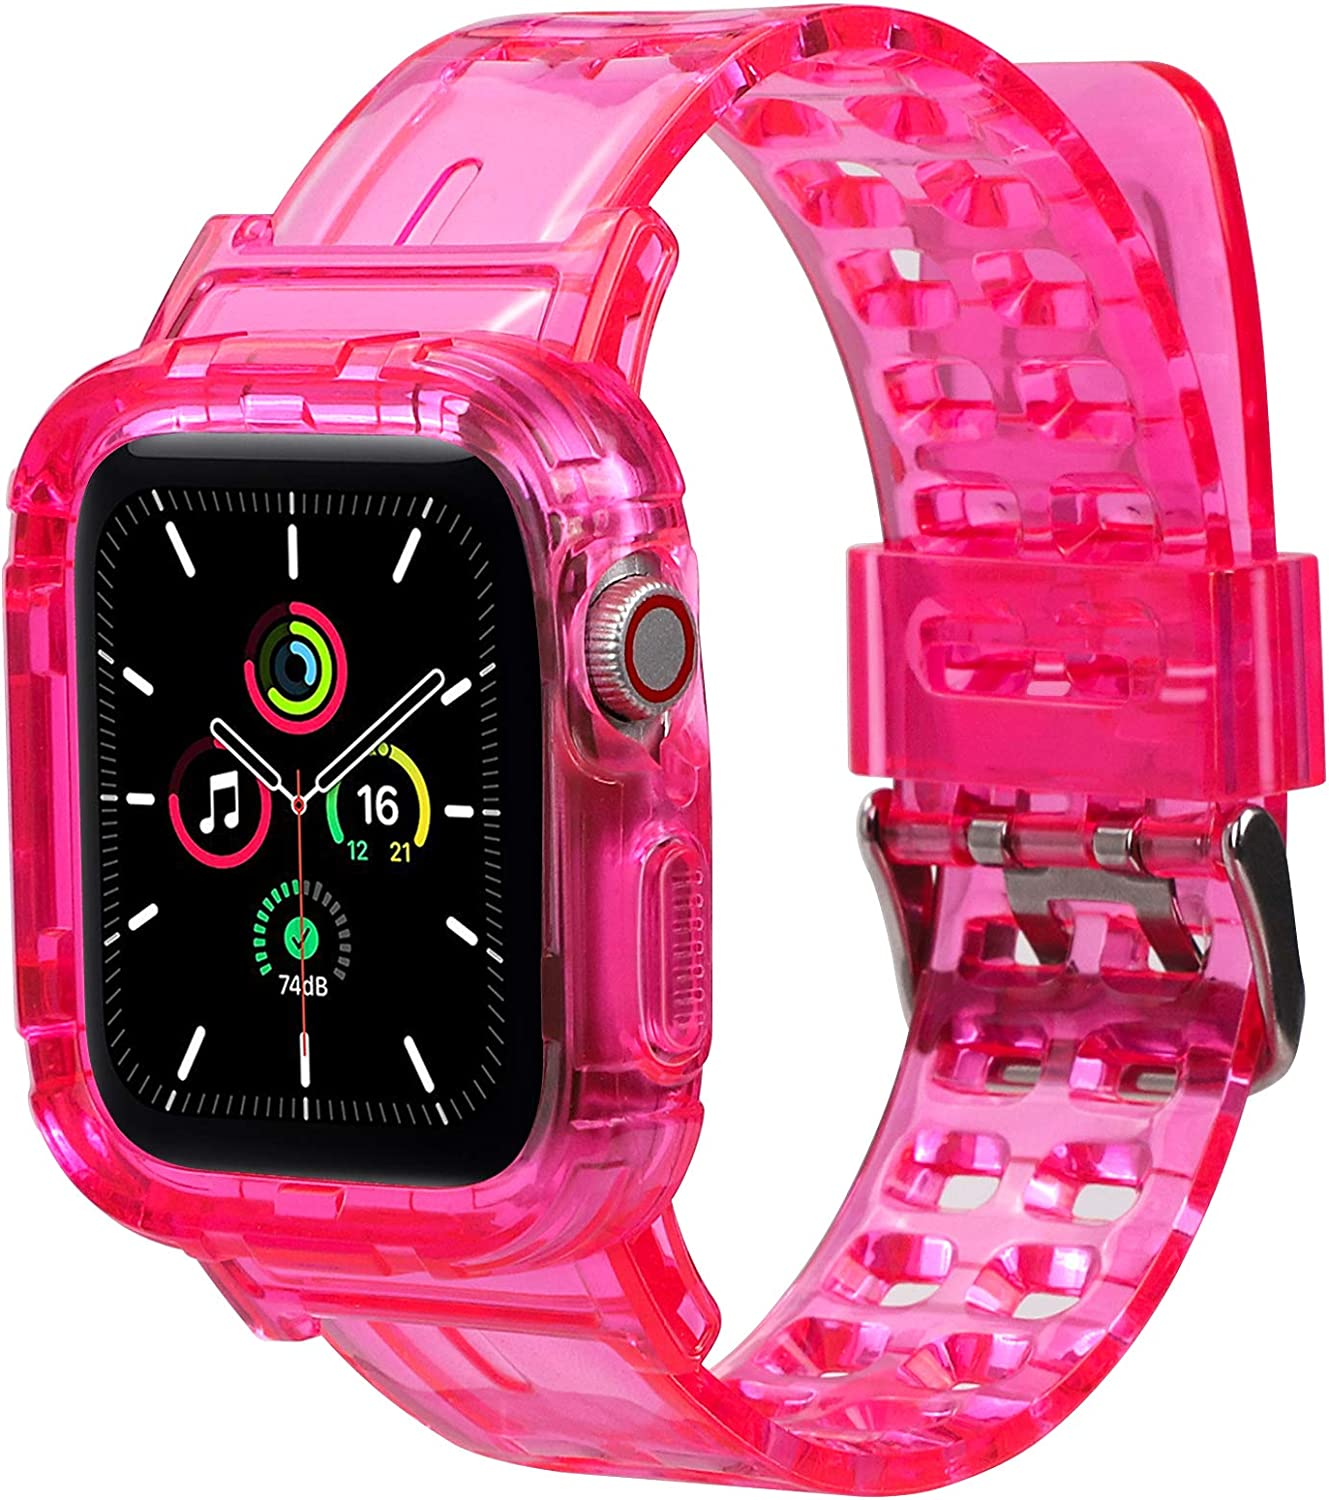 Jelanry Compatible with Apple Watch Bands 38mm 40mm 42mm 44mm, Sport Soft Silicone iWatch Bands for Women Men Wristbands Replacement Strap with Classic Clasp for iWatch Series SE 6 5 4 3 2 Pink